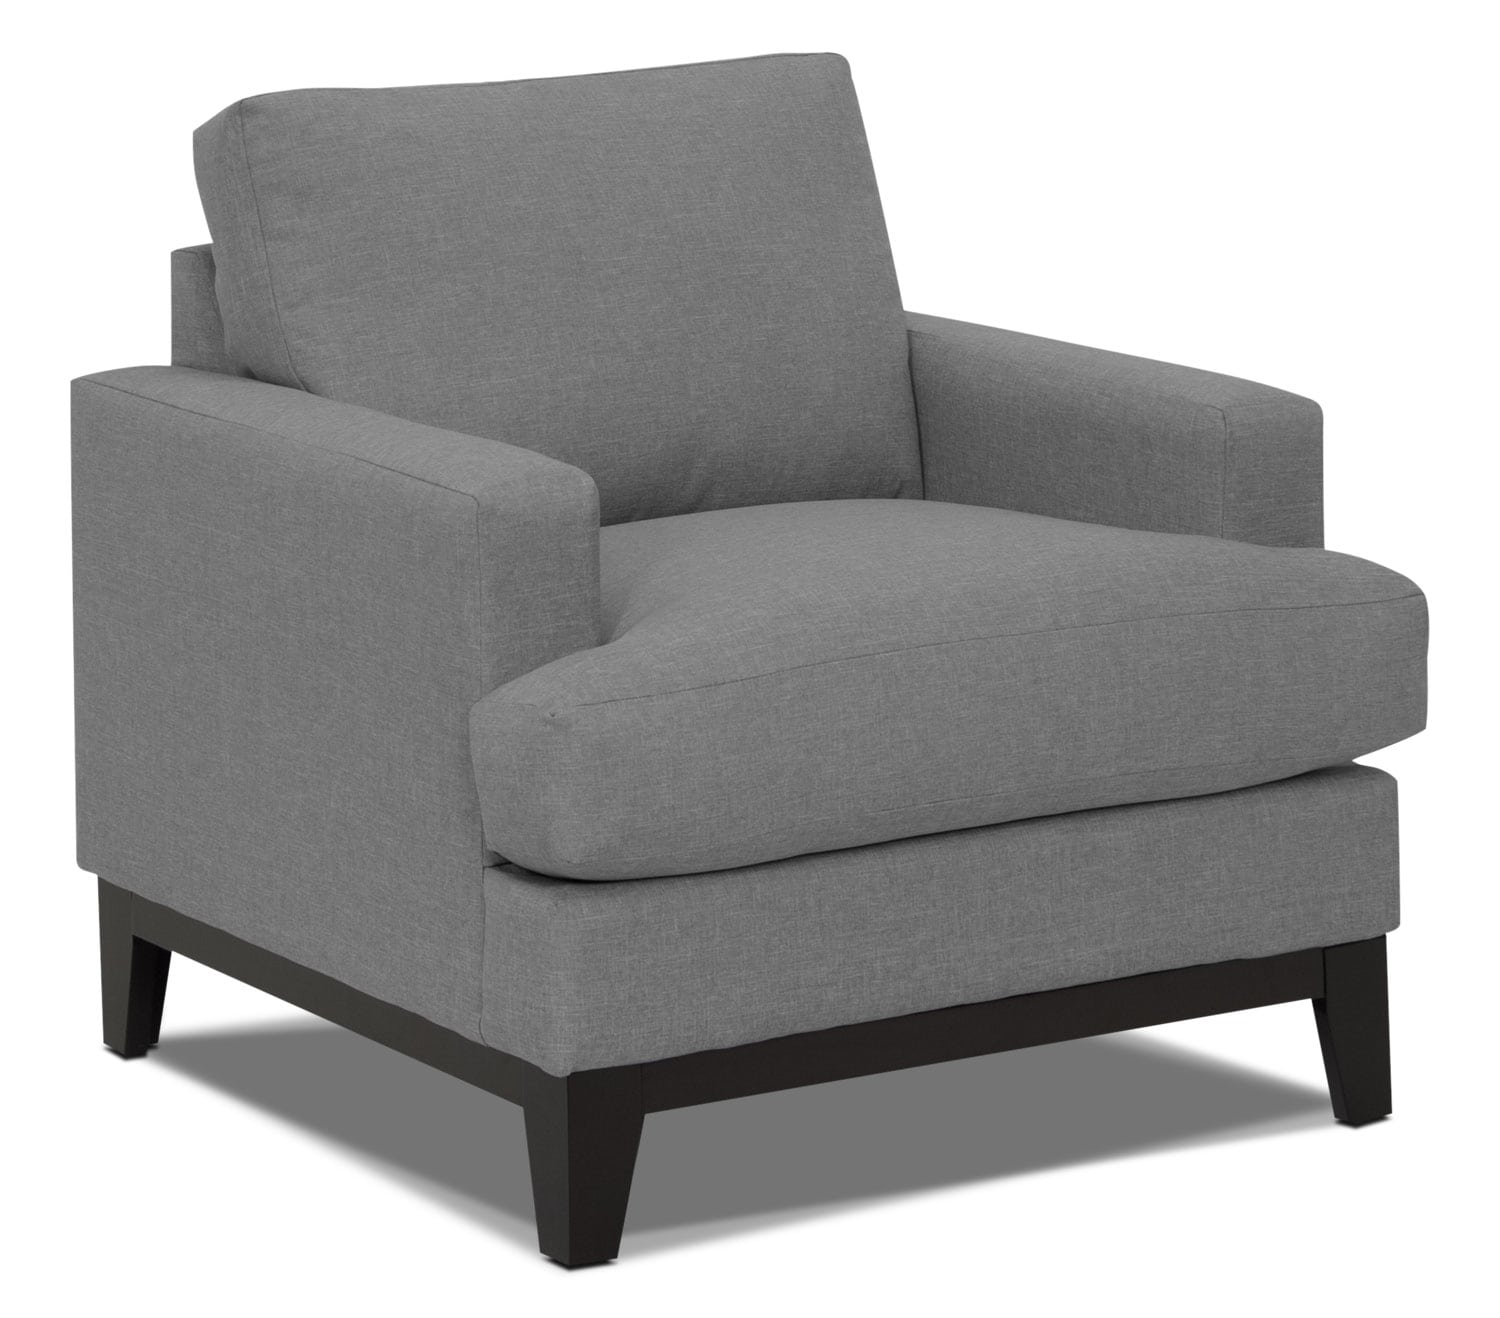 Living Room Furniture - Everly Linen-Look Fabric Chair - Heather Grey